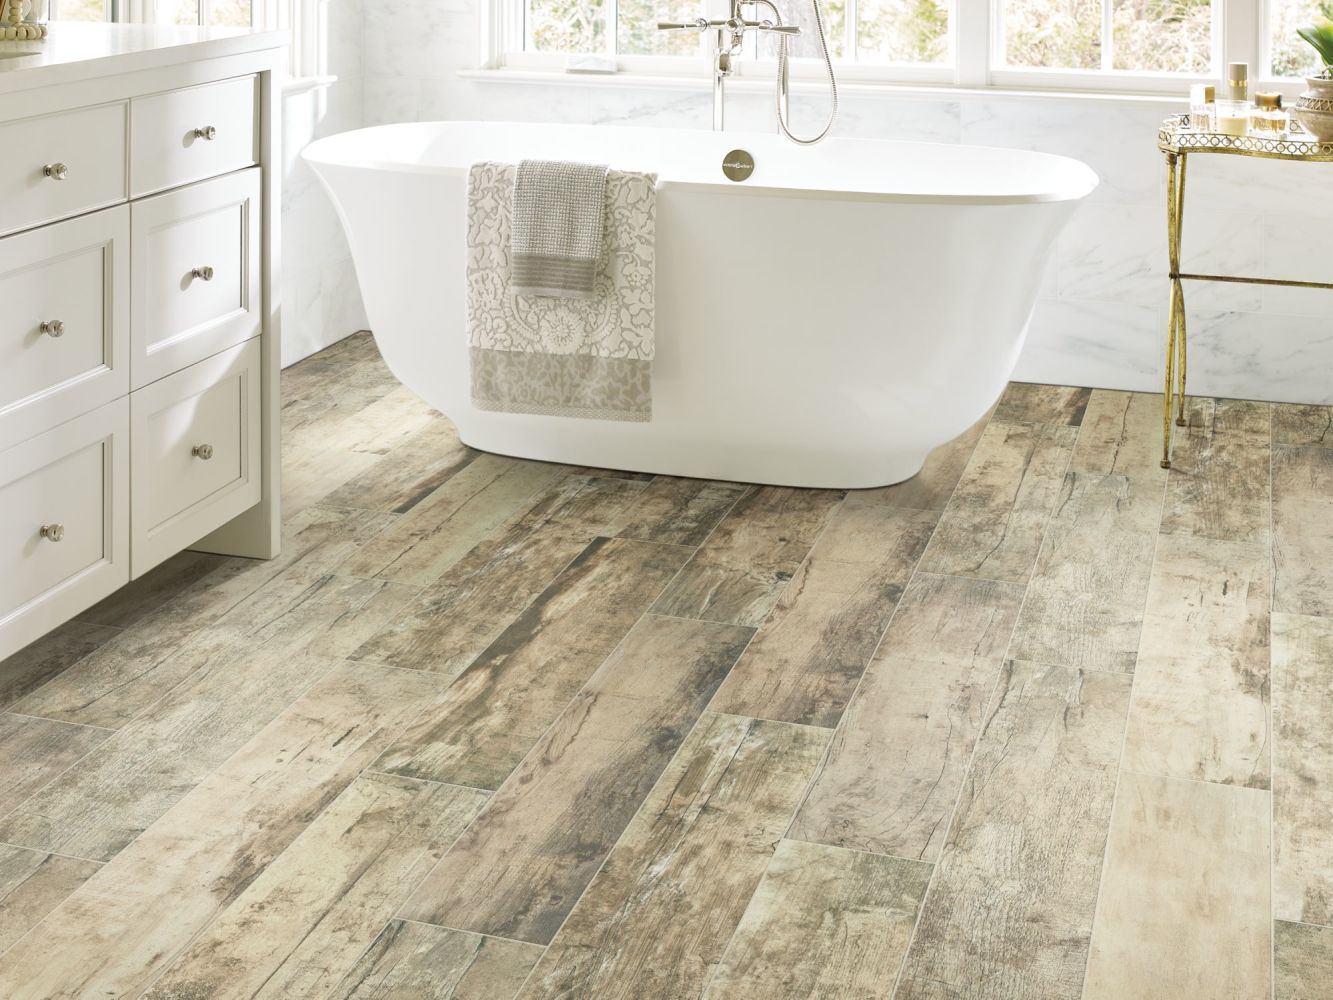 Shaw Floors Mattamy Homes Jackson Parkway 8×40 Oak 00200_M548H